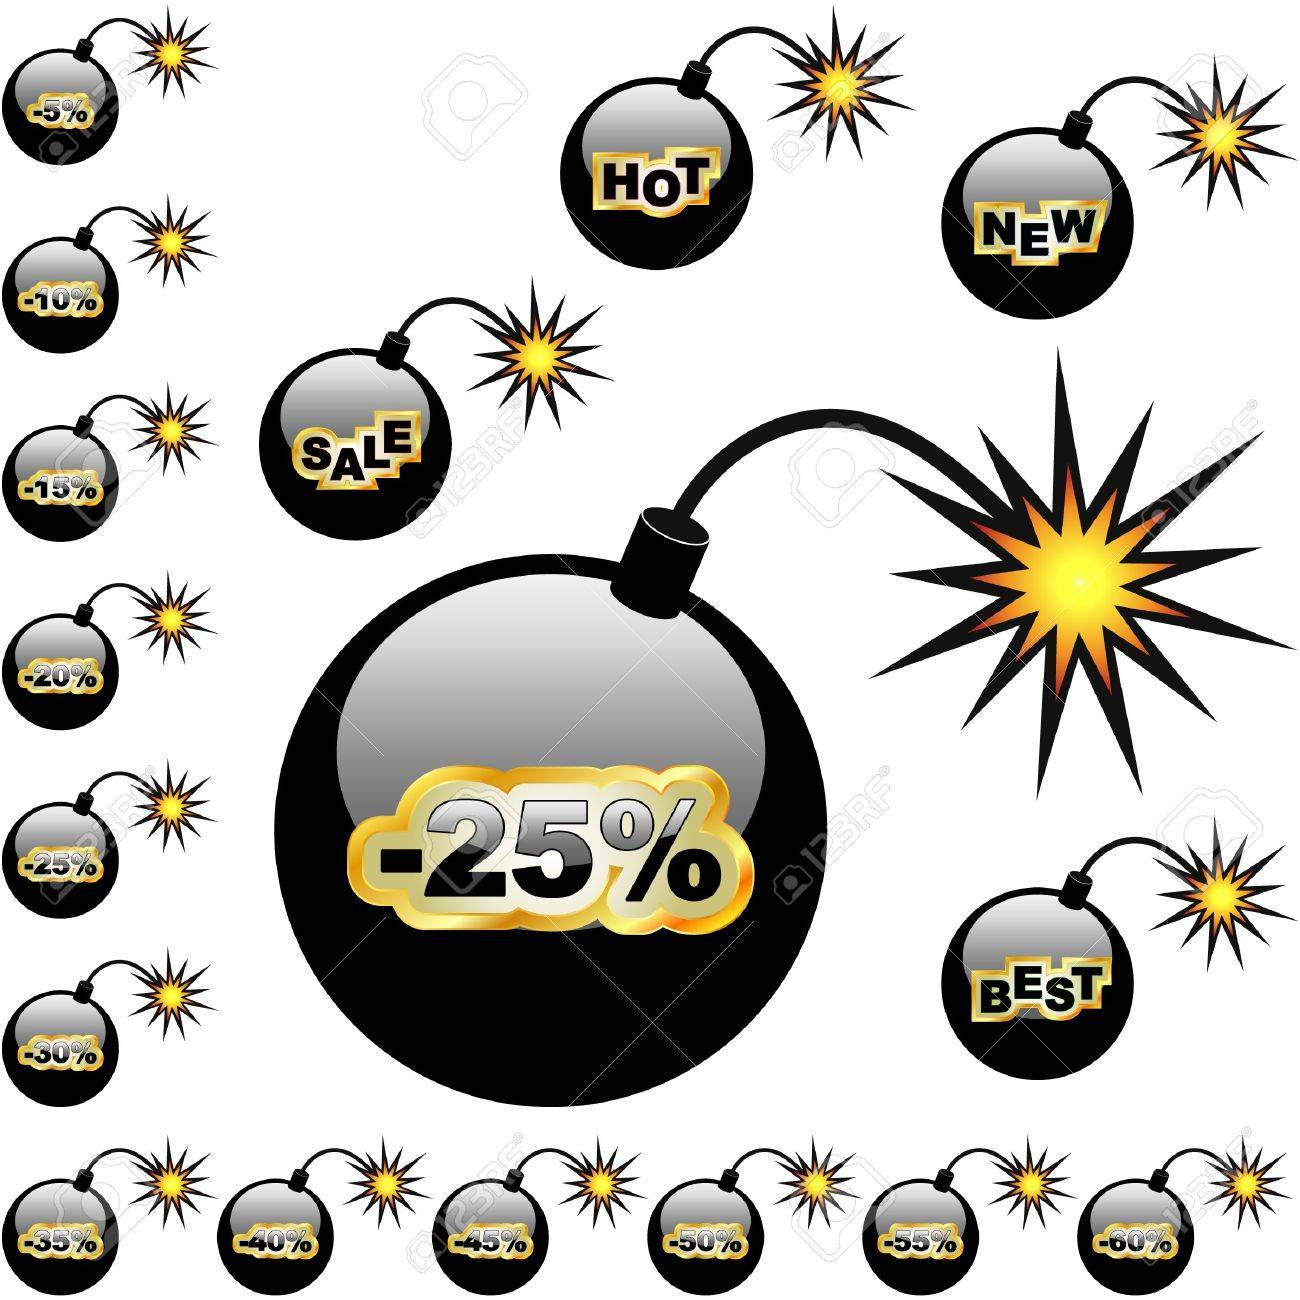 Discount label for sale. Bomb collection. Stock Vector - 7800599